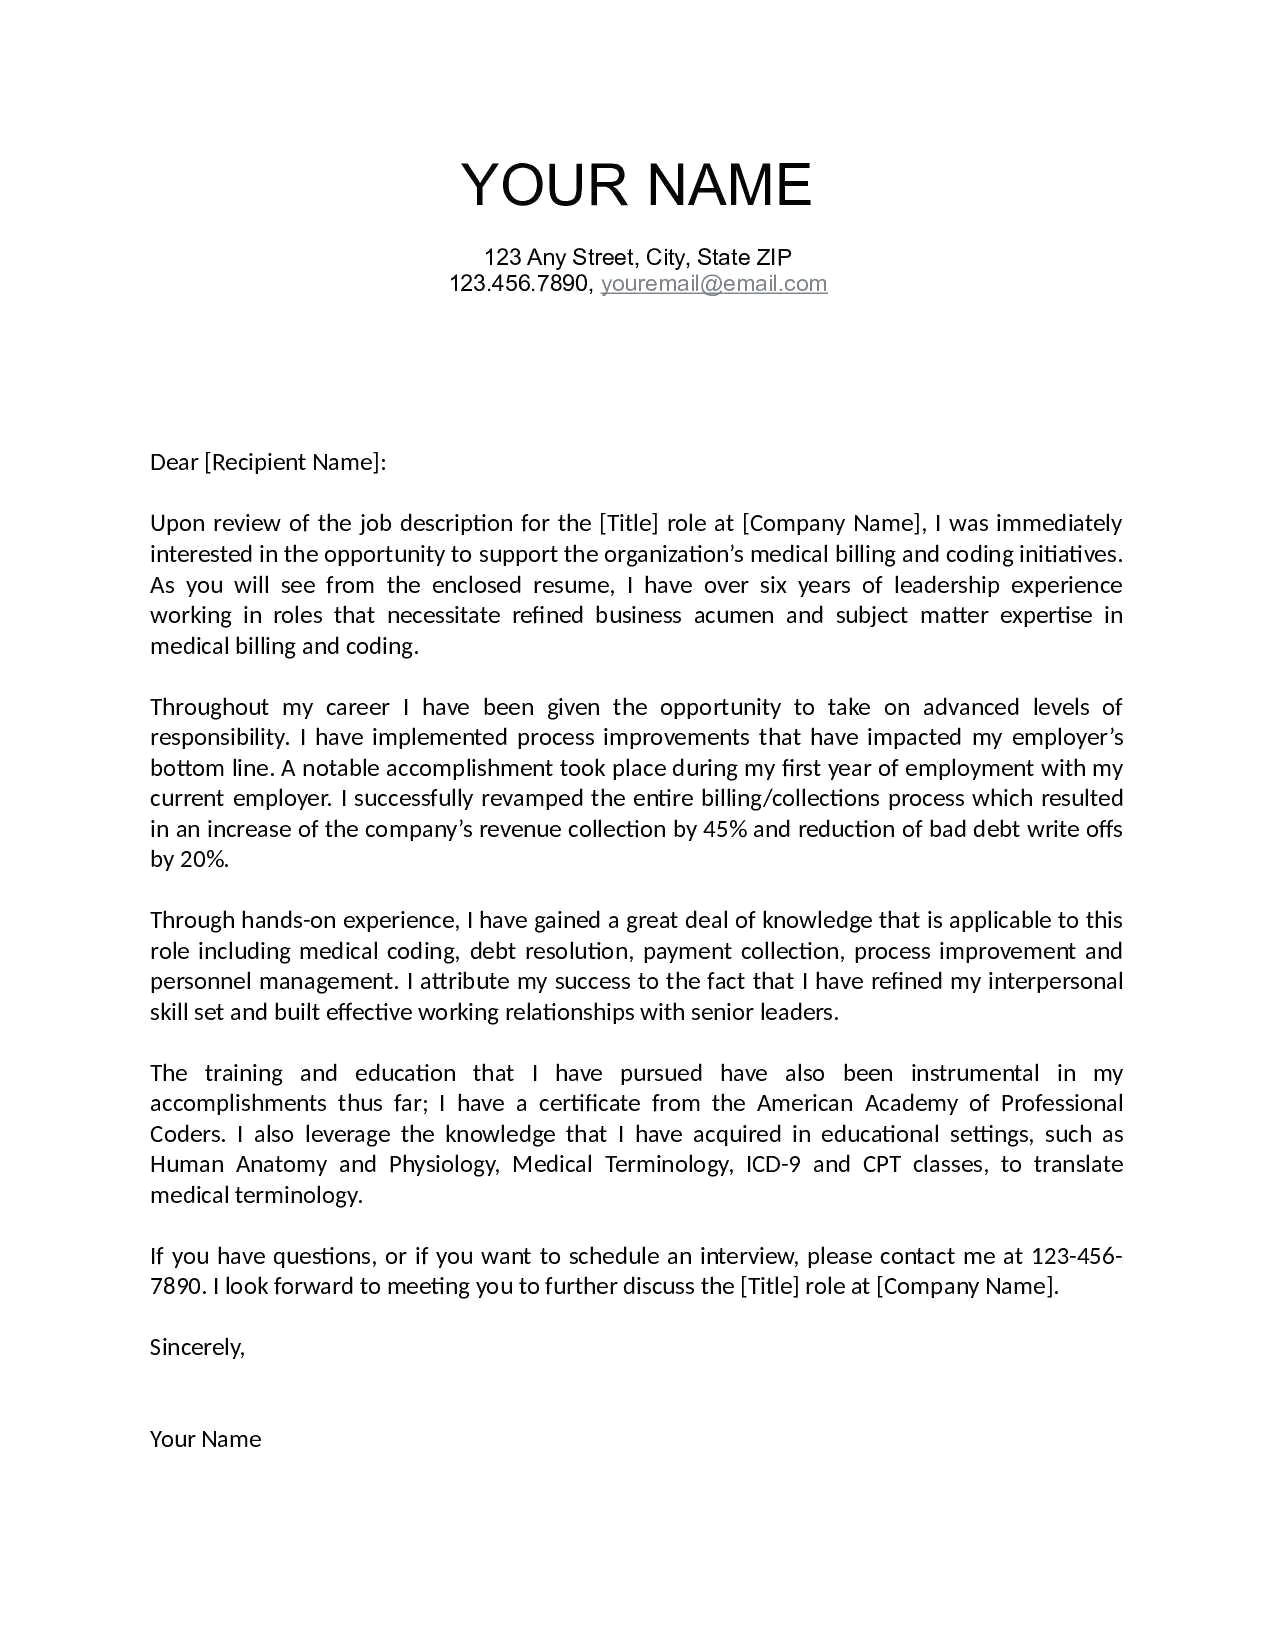 Cover Letter Template for Teenager - 47 New Resume with No Job Experience